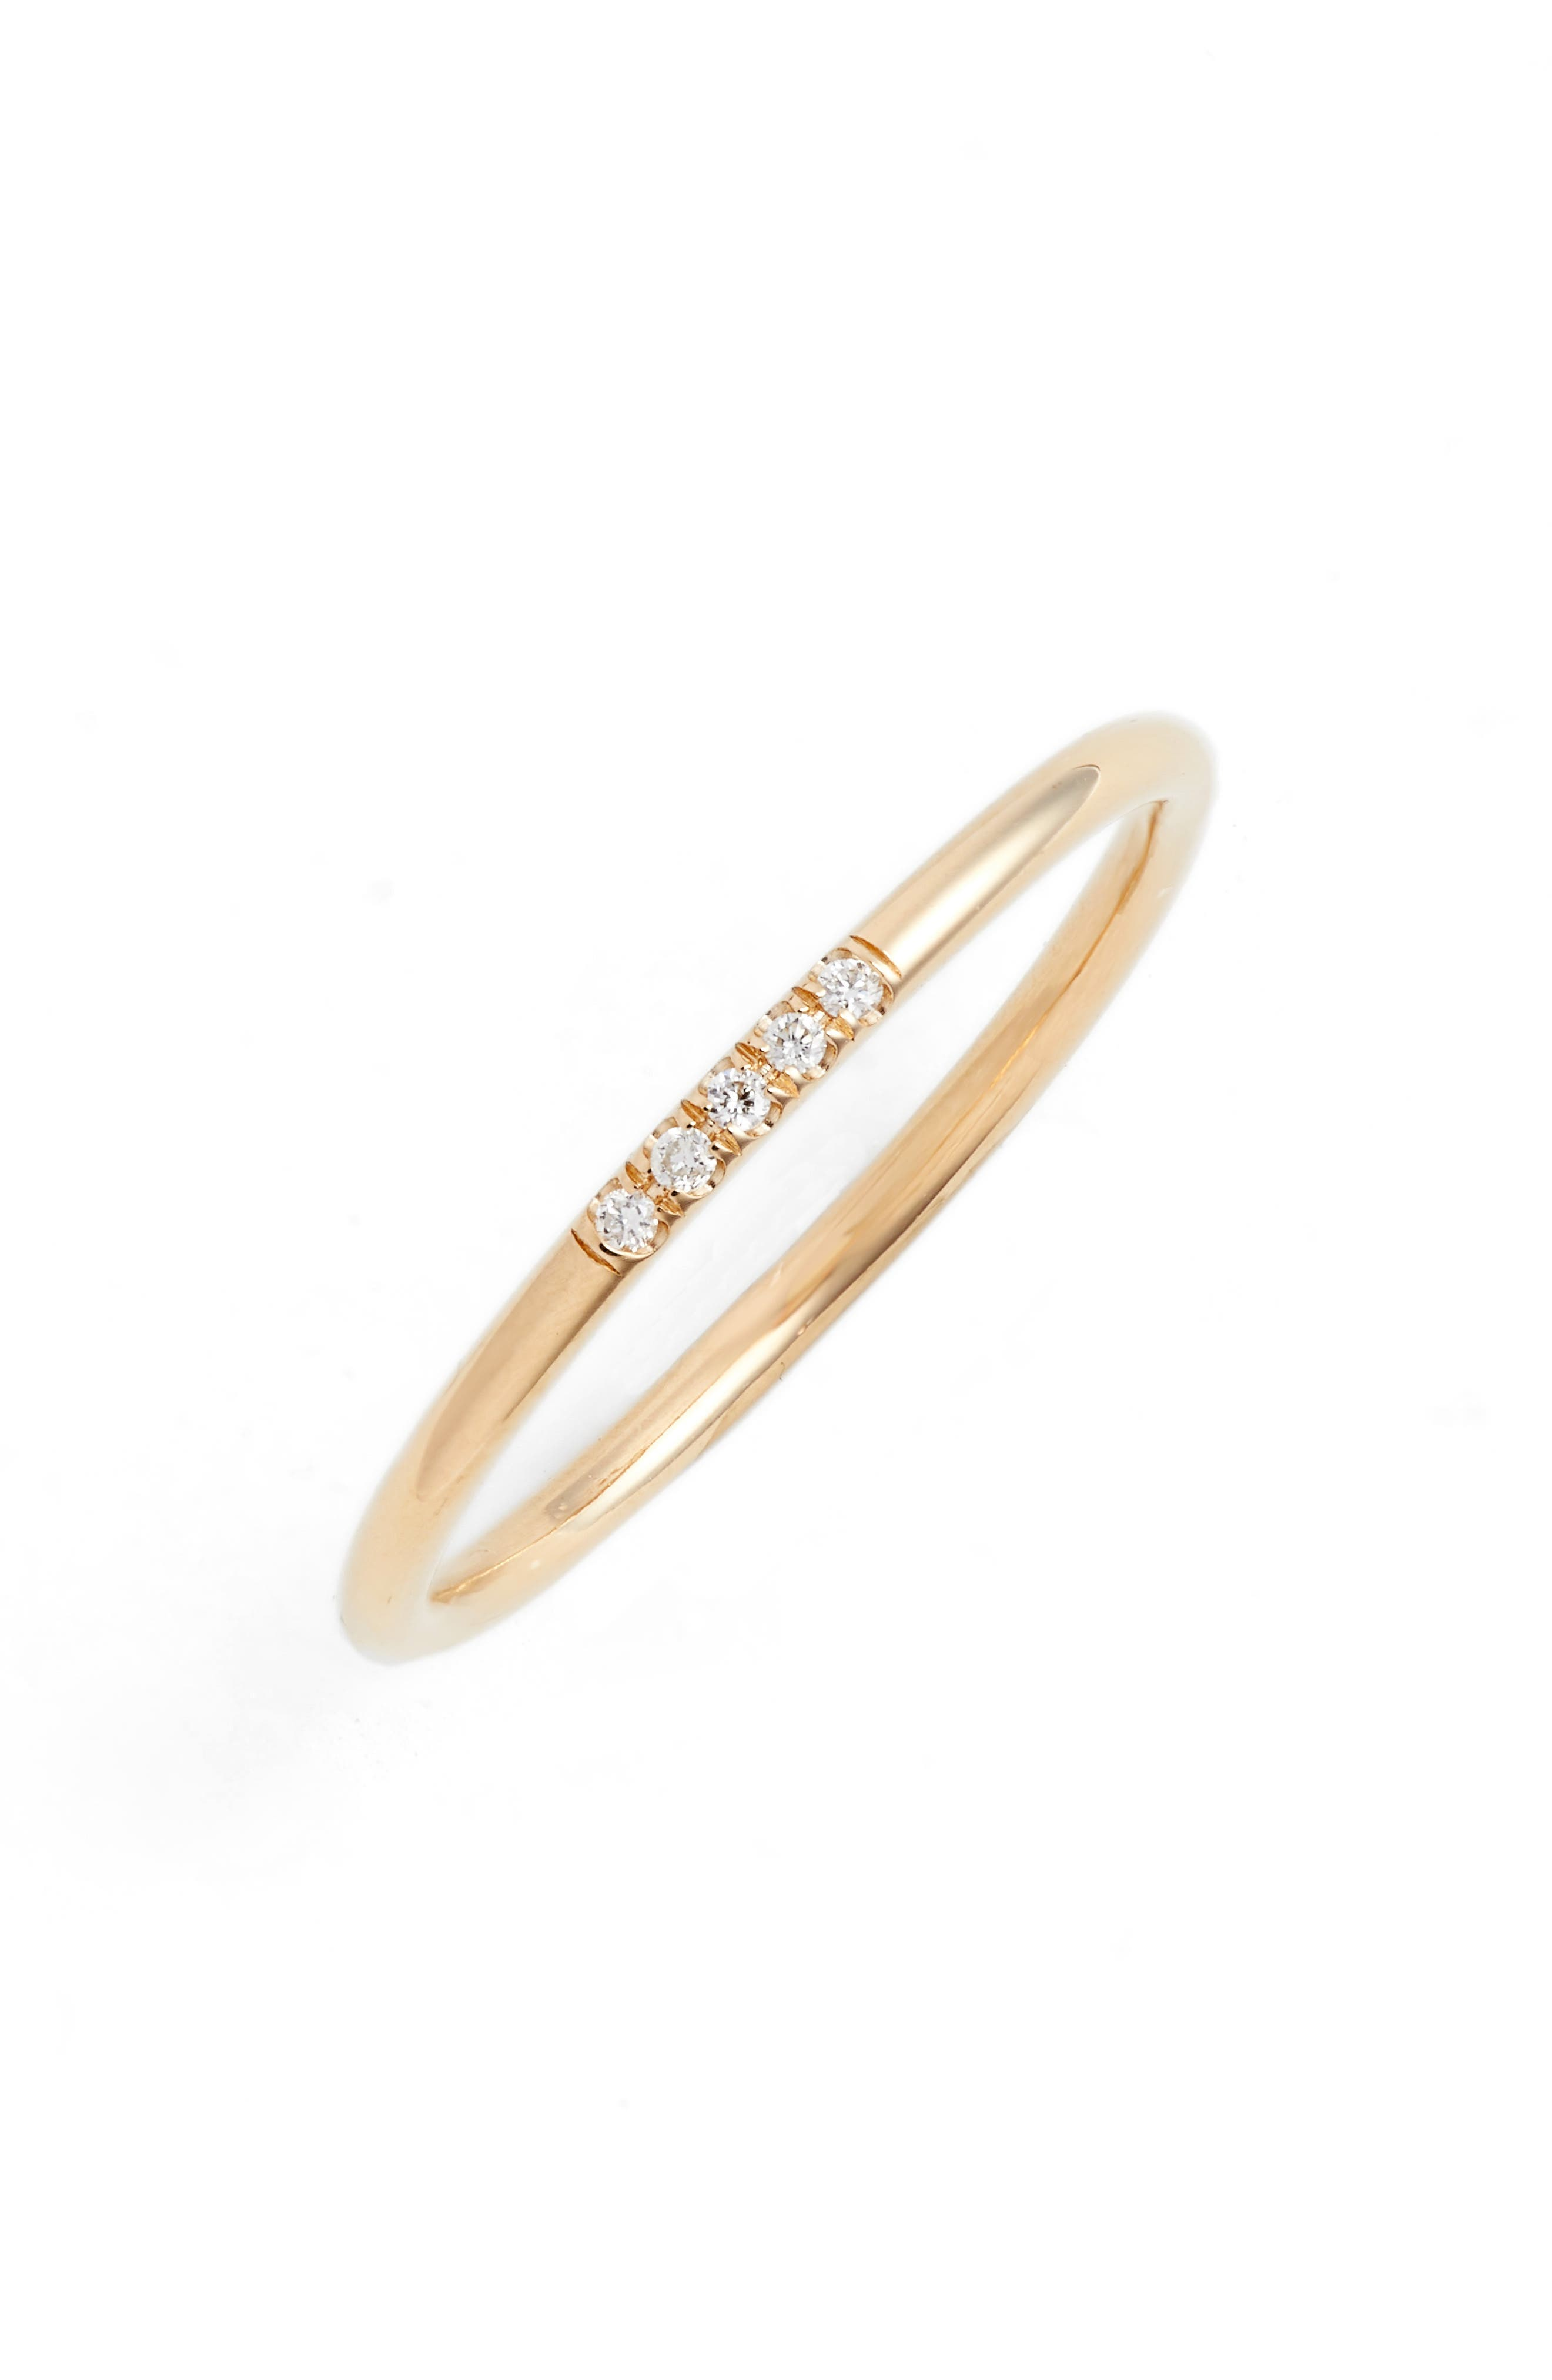 Main Image - Zoë Chicco French Pavé Diamond Stacking Ring